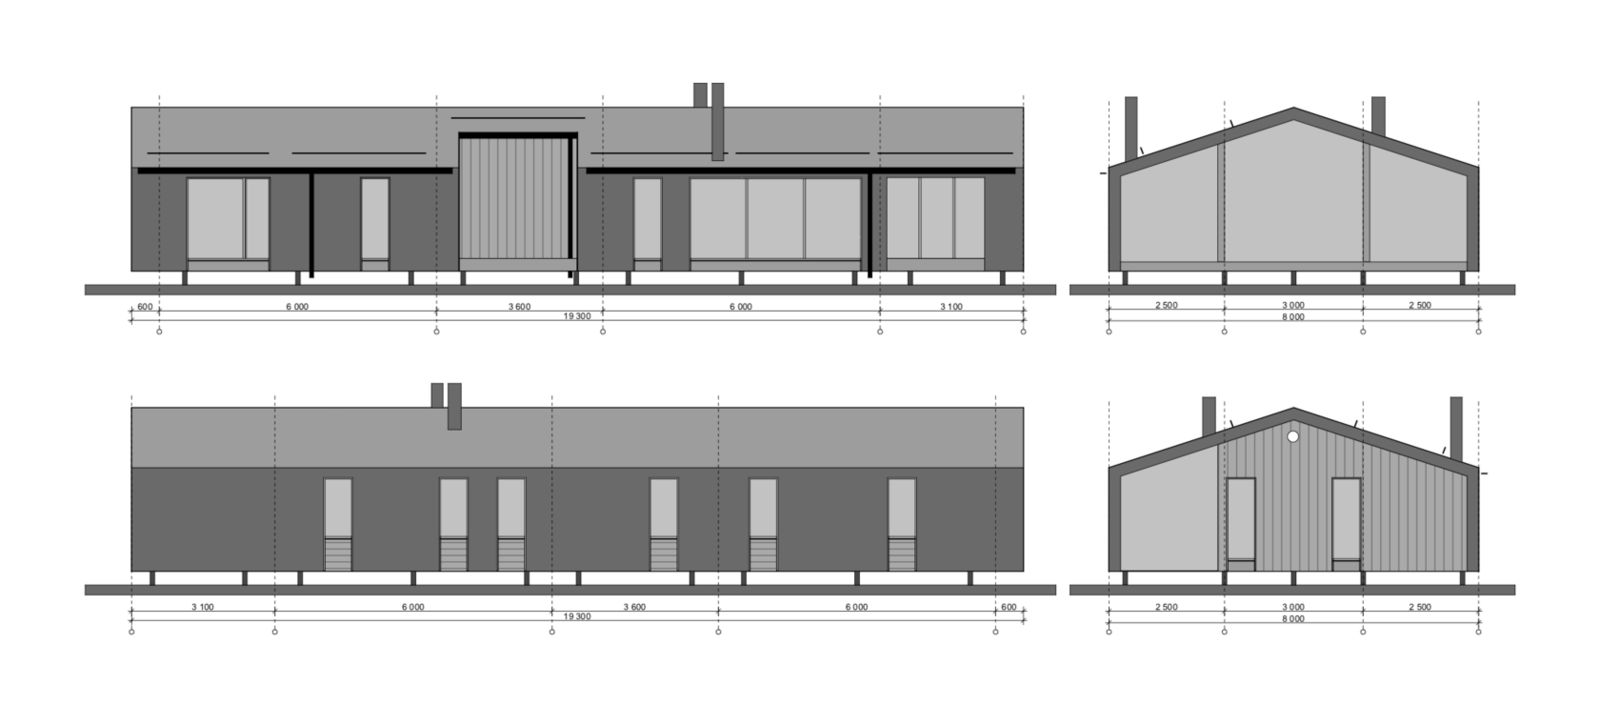 DD 103 facade drawing  Photo 21 of 22 in DublDom Prefab Homes Can Be Built in One Day